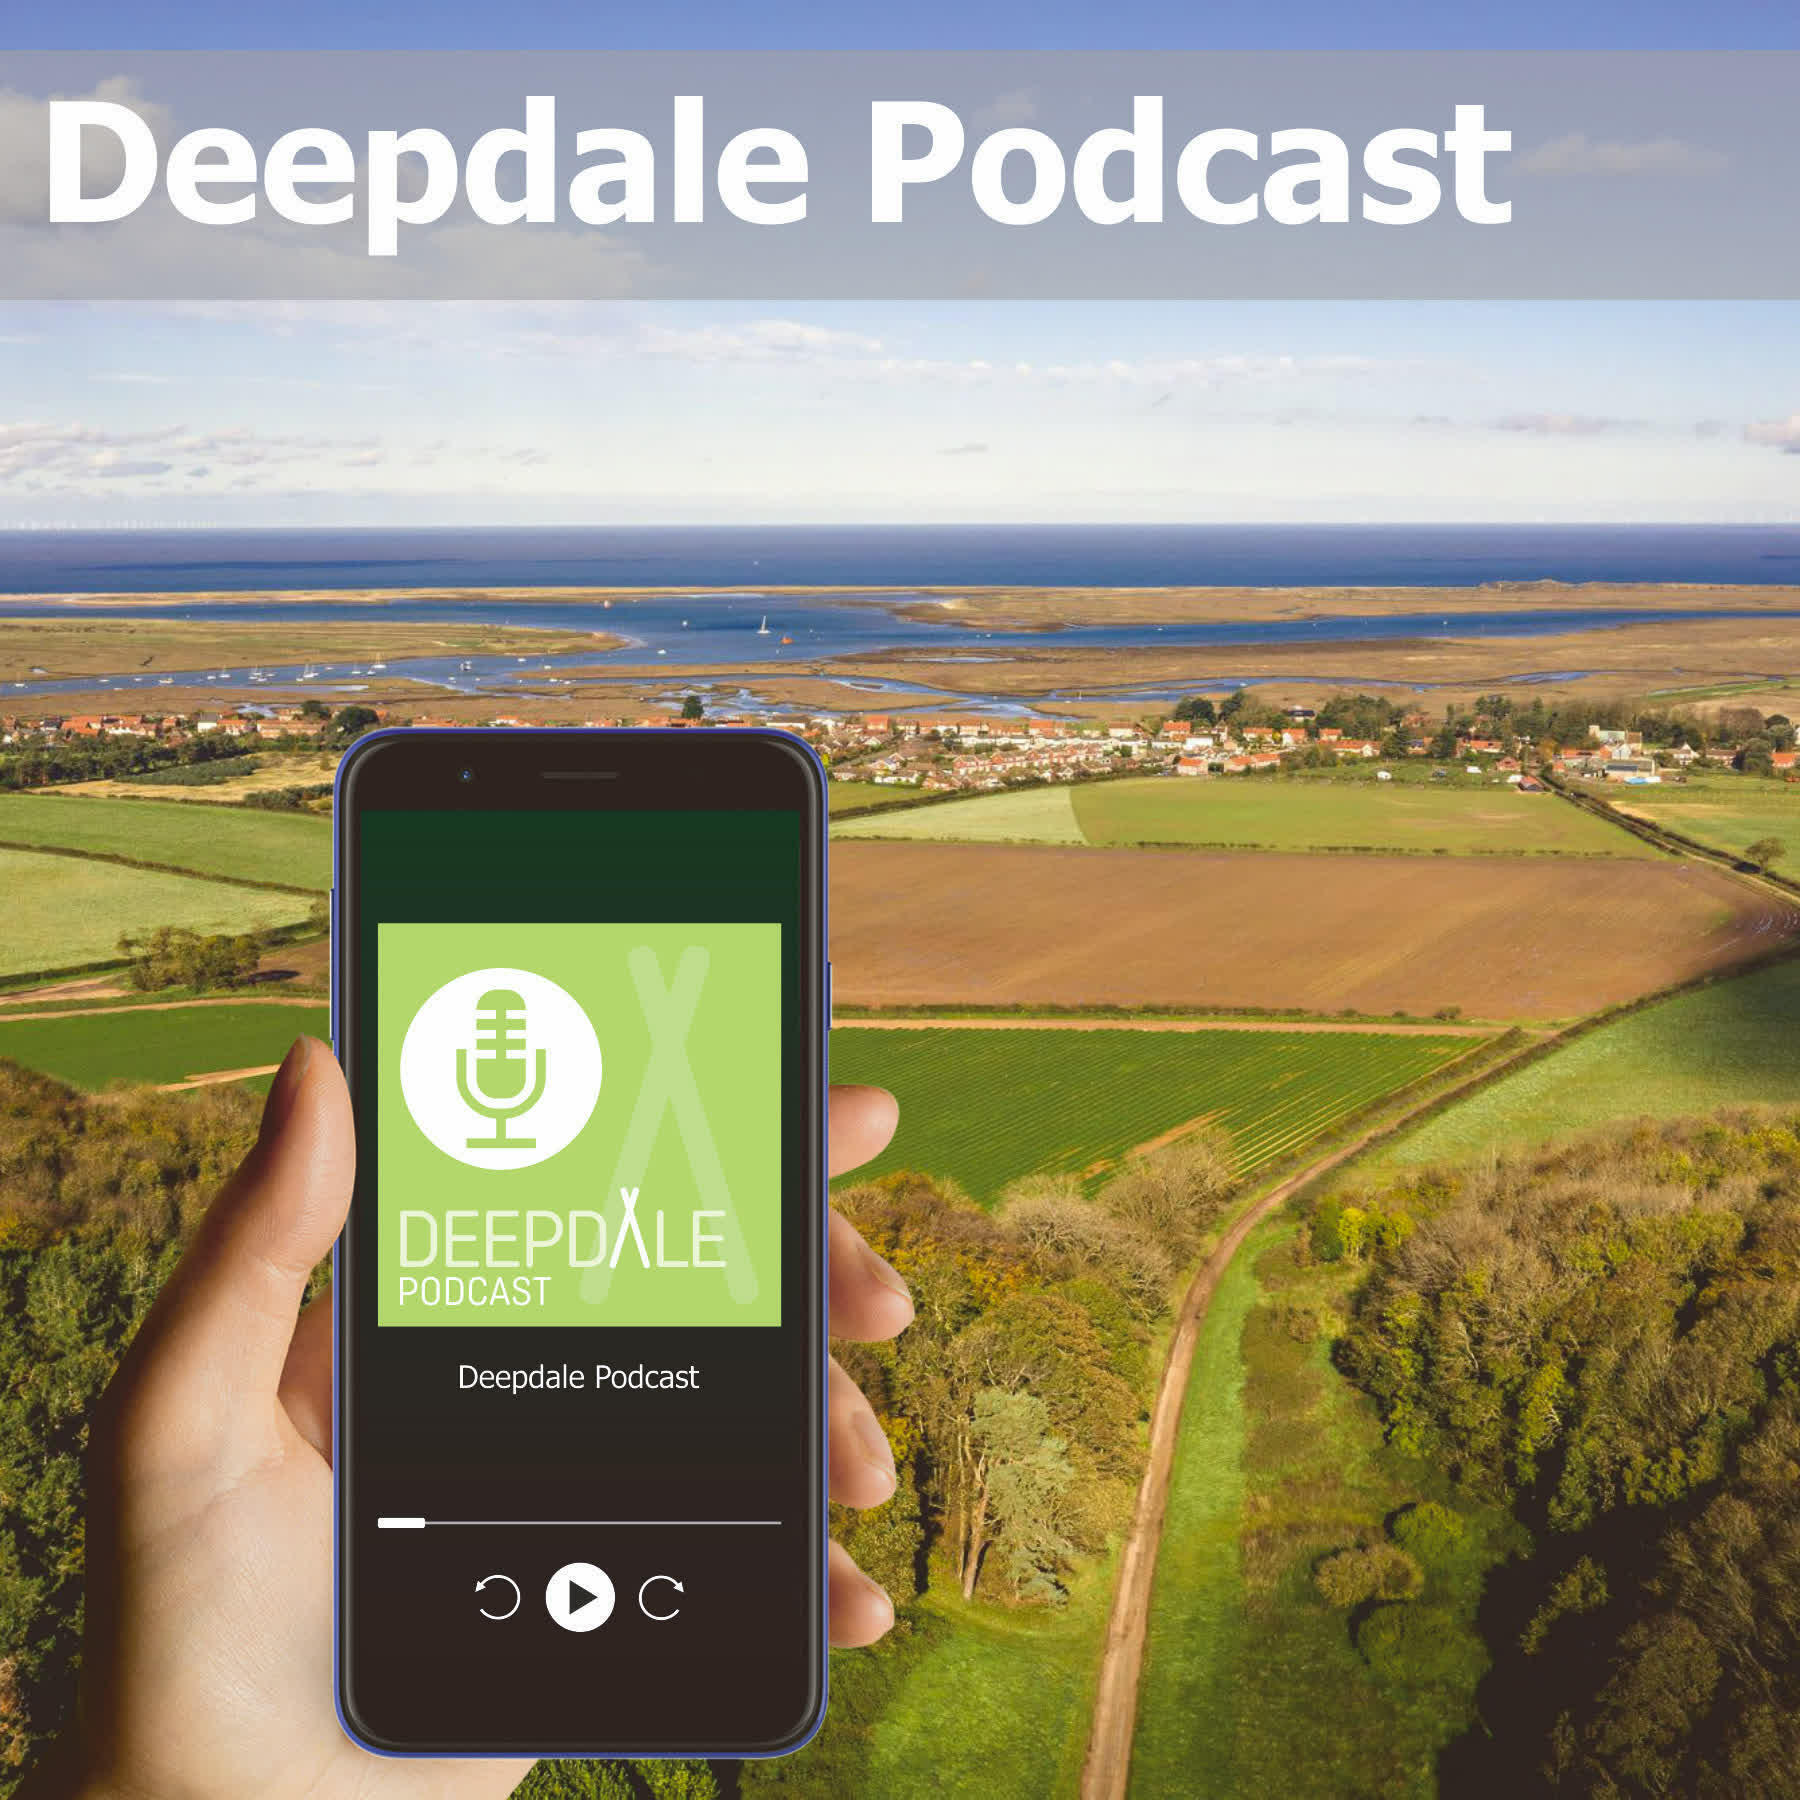 Deepdale Podcast